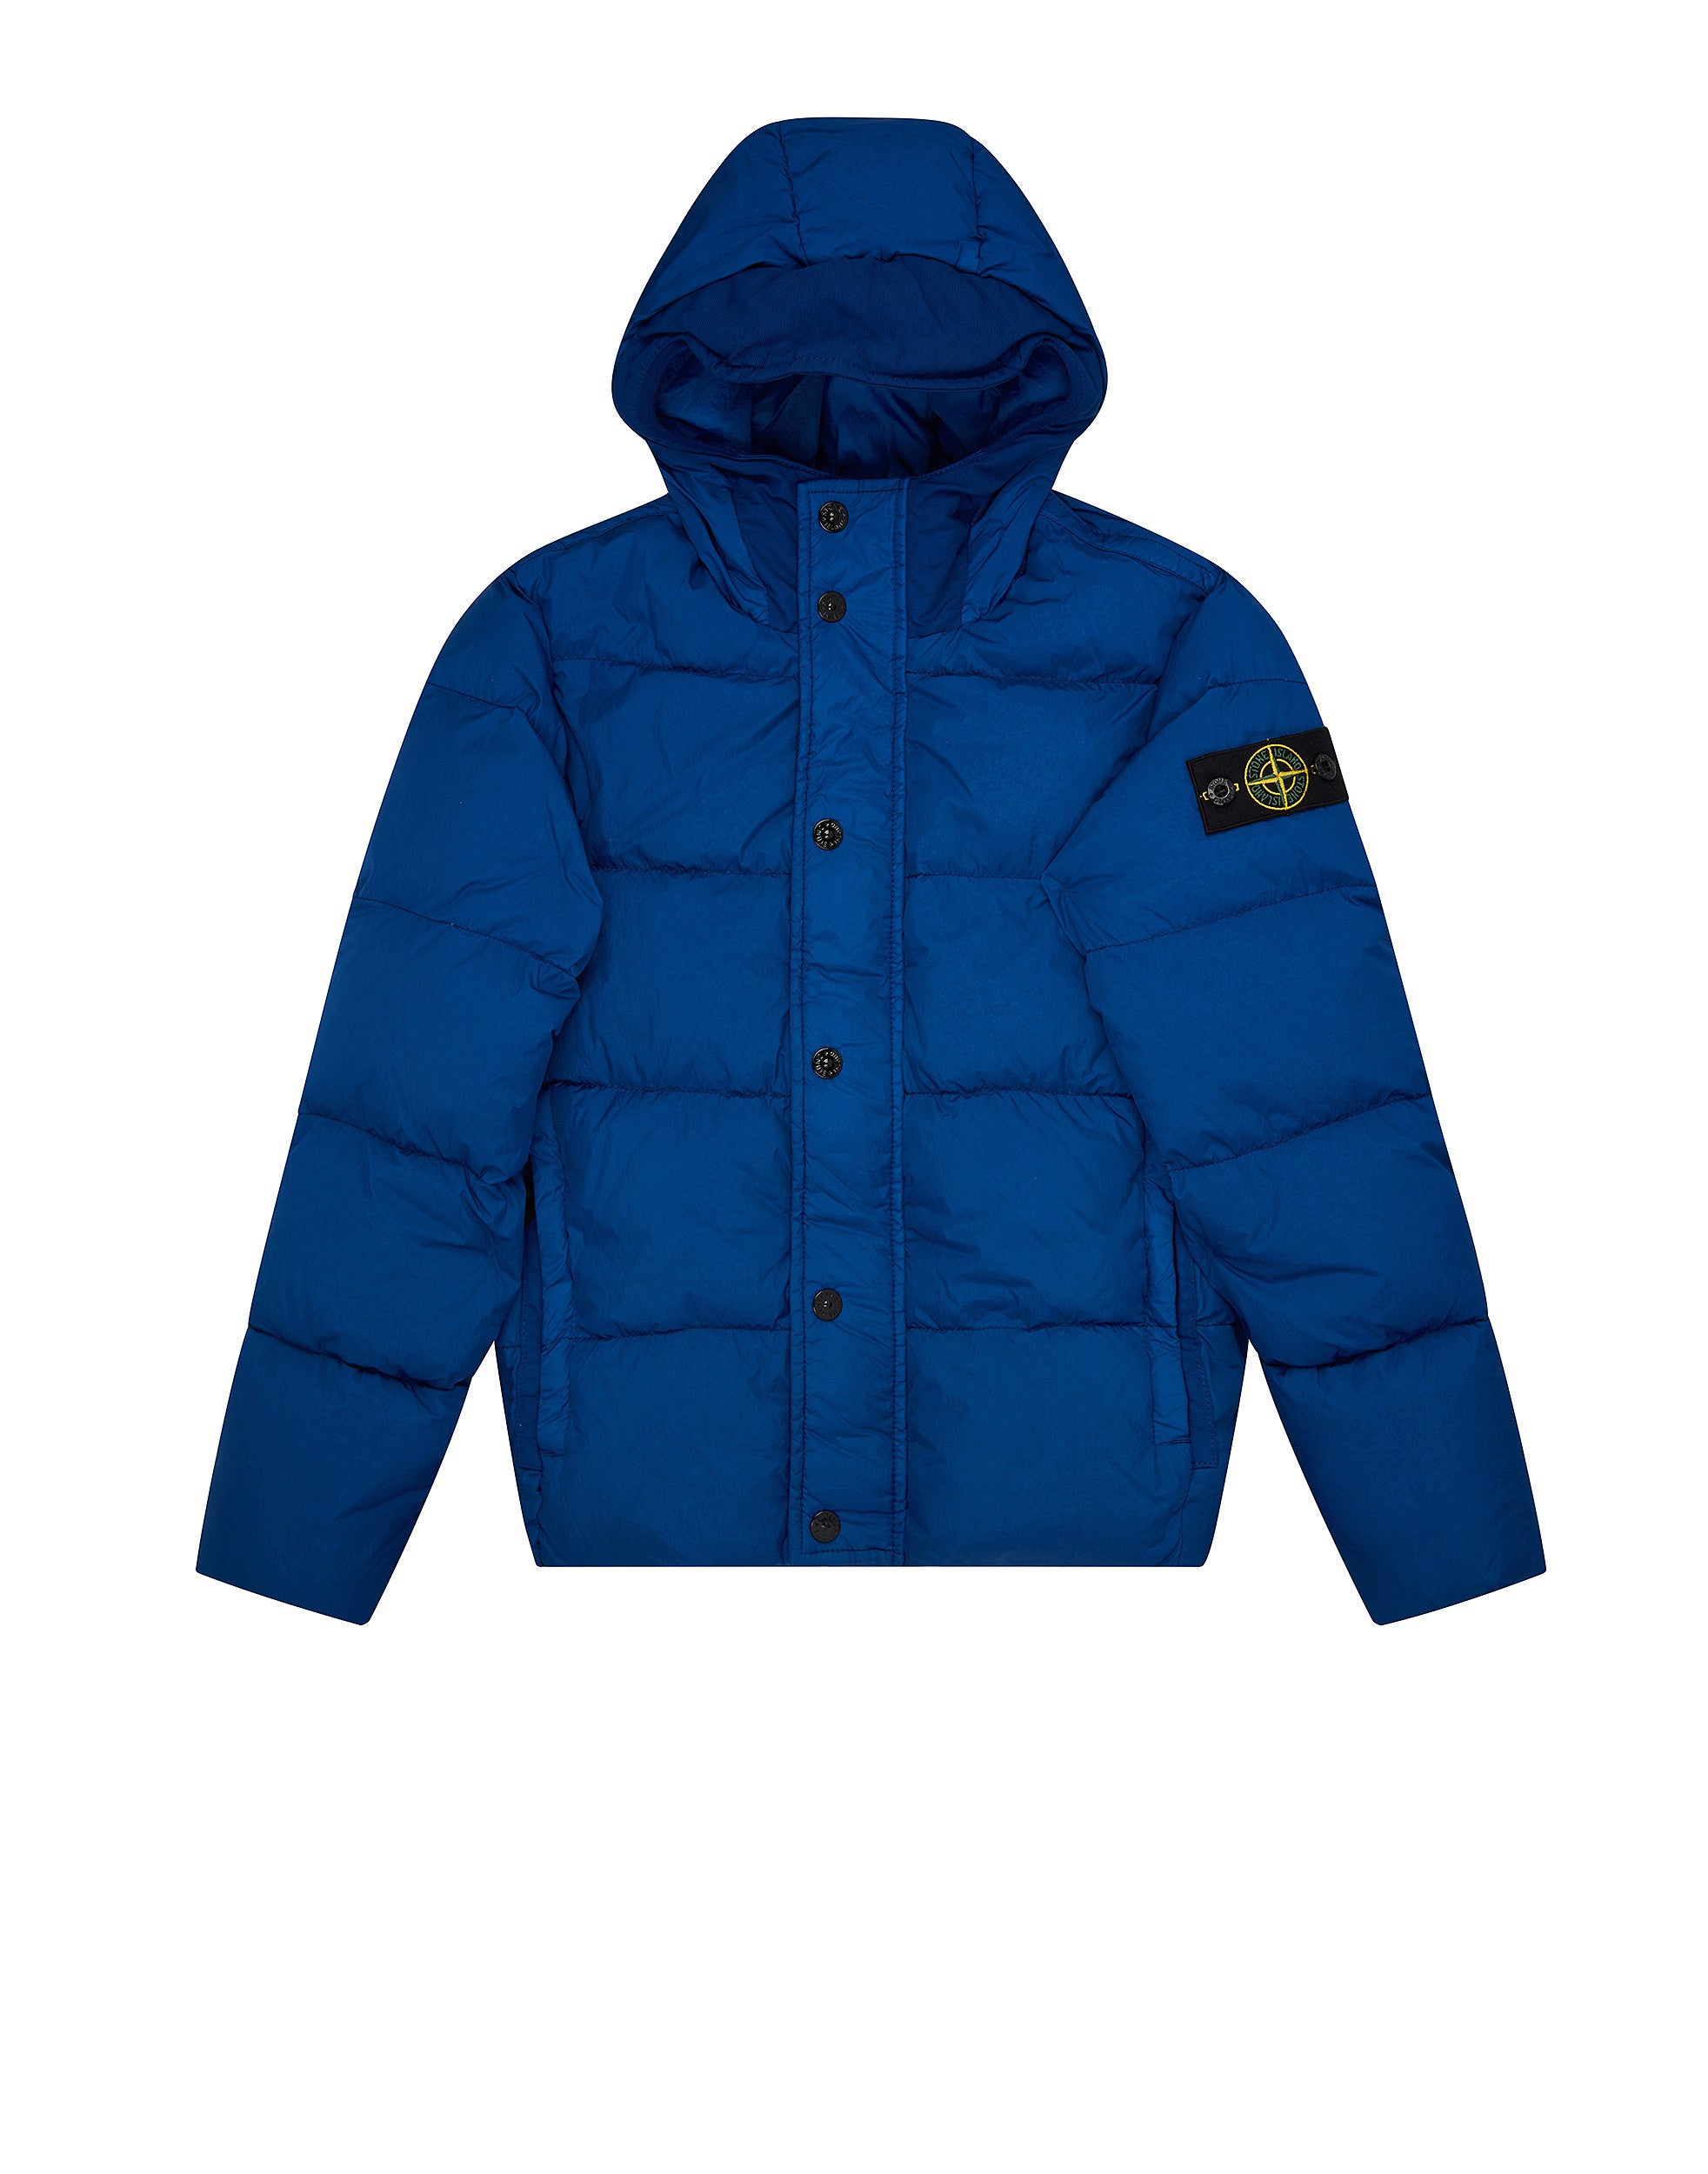 40233 GARMENT DYED CRINKLE REPS DOWN Jacket in Blue